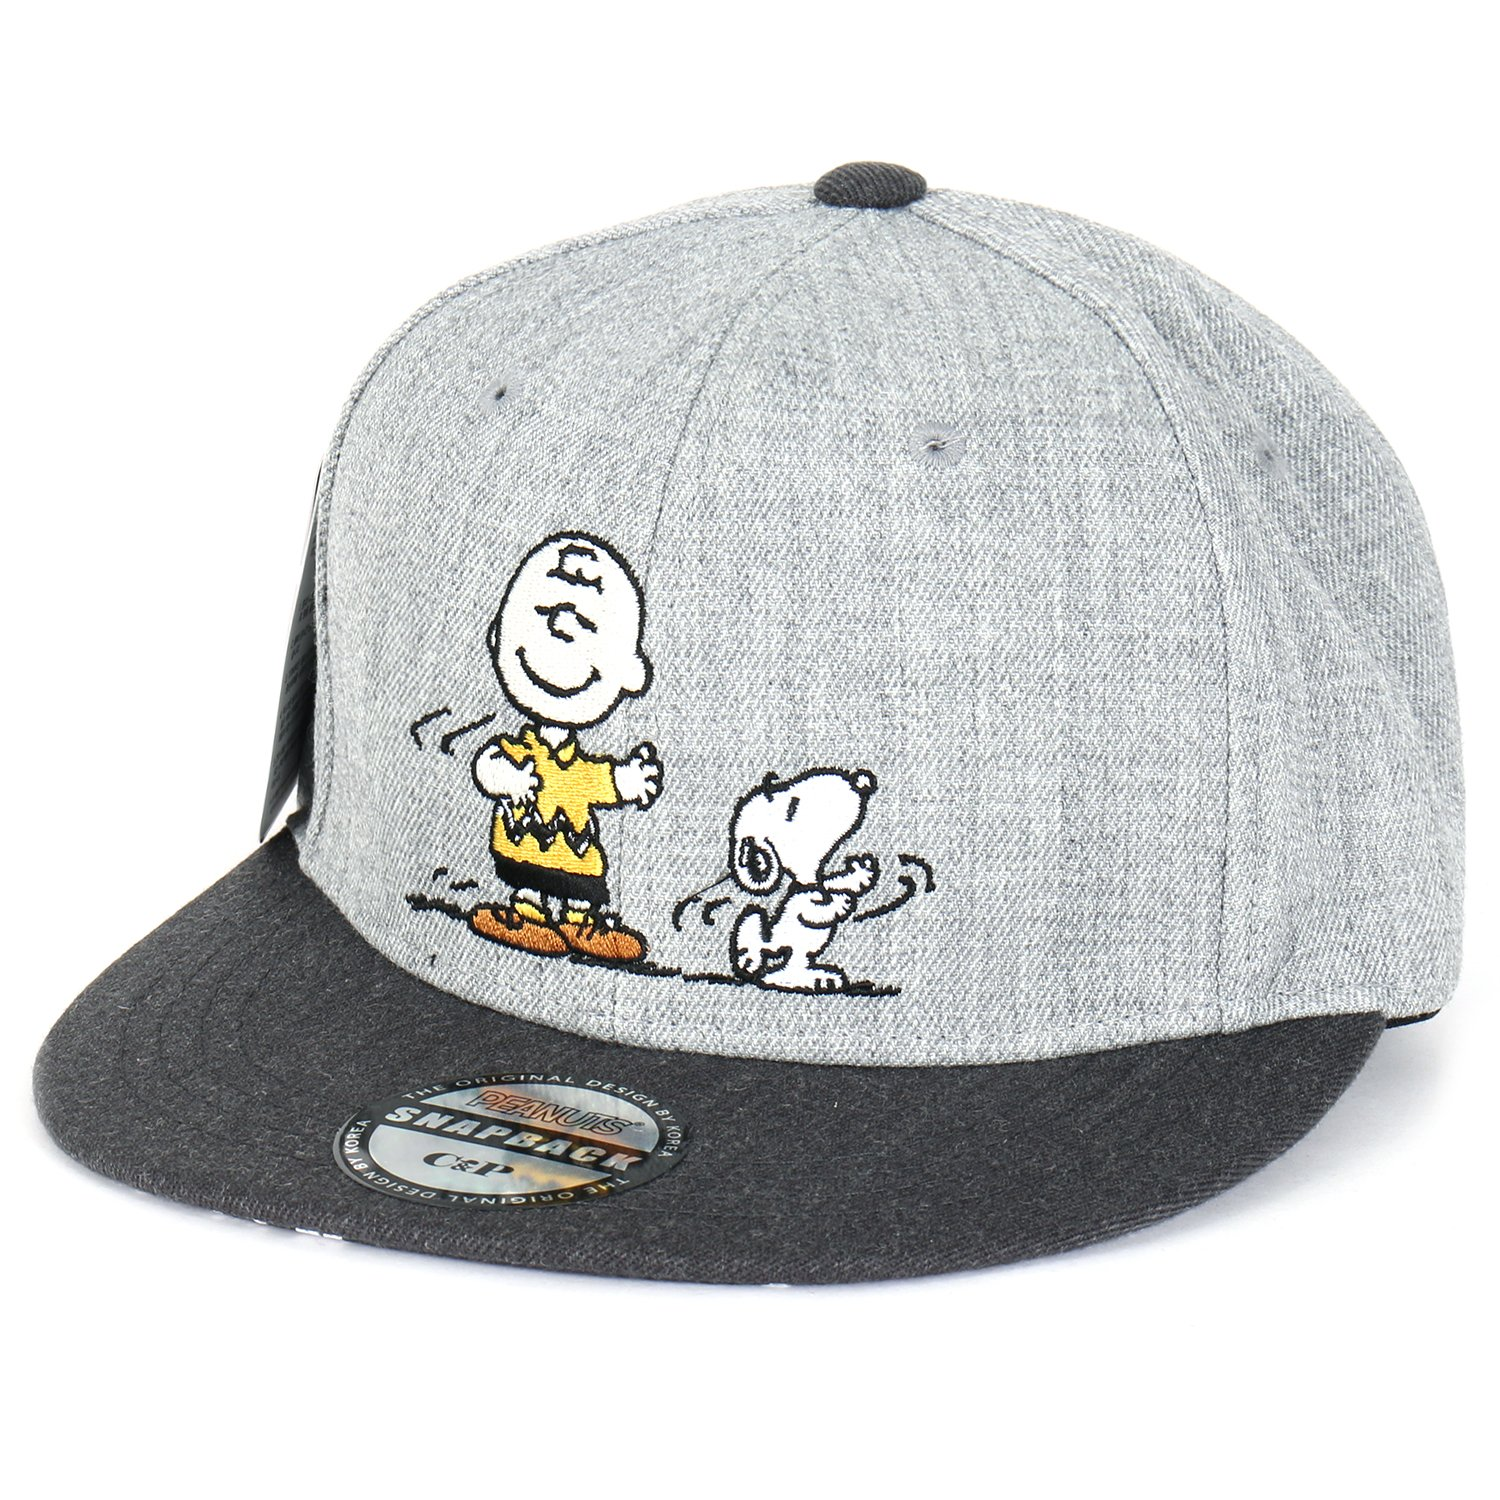 c7e64d86873 Peanuts Embroidery Snoopy Charlie Brown New Era Style Snapback Hat Baseball  Cap (ballcap-1325-3)  Amazon.co.uk  Clothing